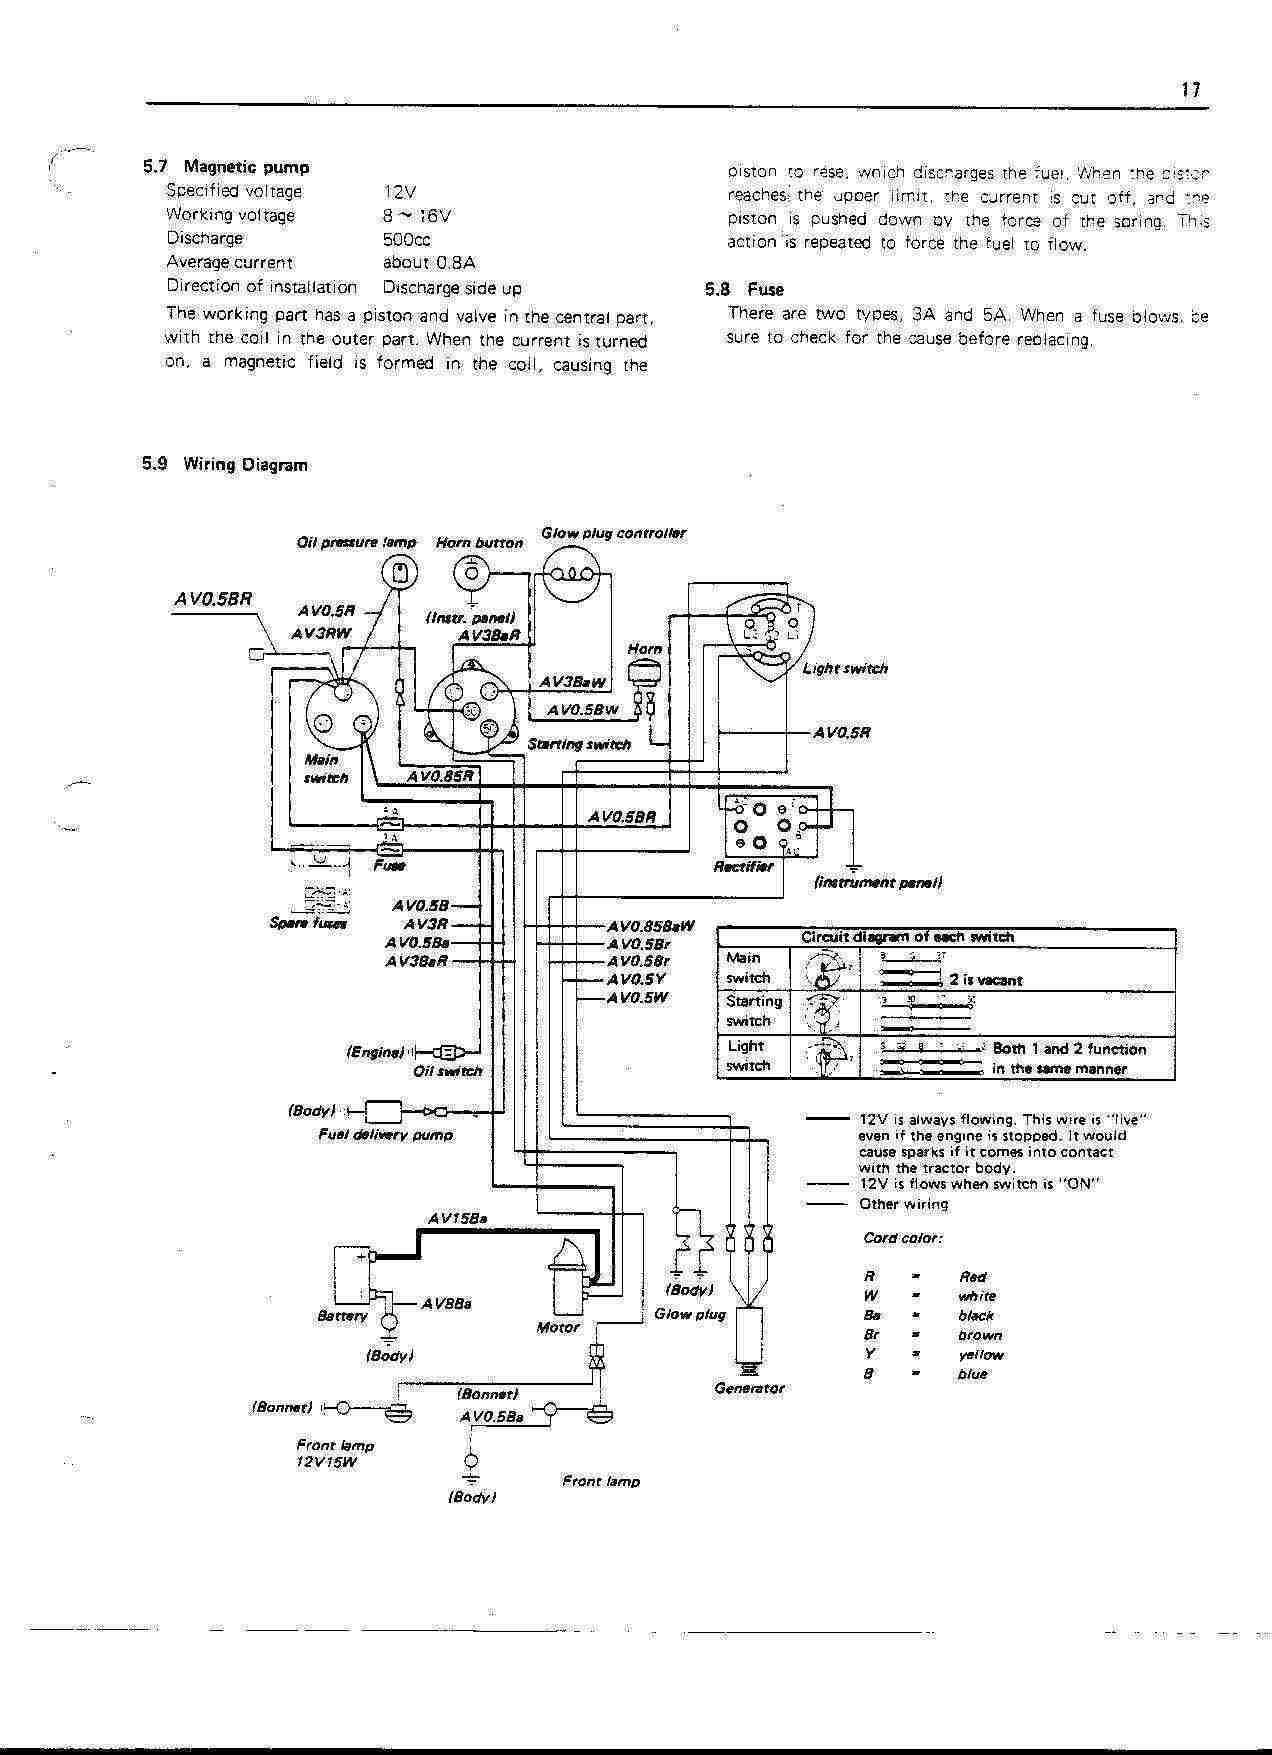 kubota wiring diagram duncan designed hb 102 pdf manual books wire simple diagrams toyota electrical tractor